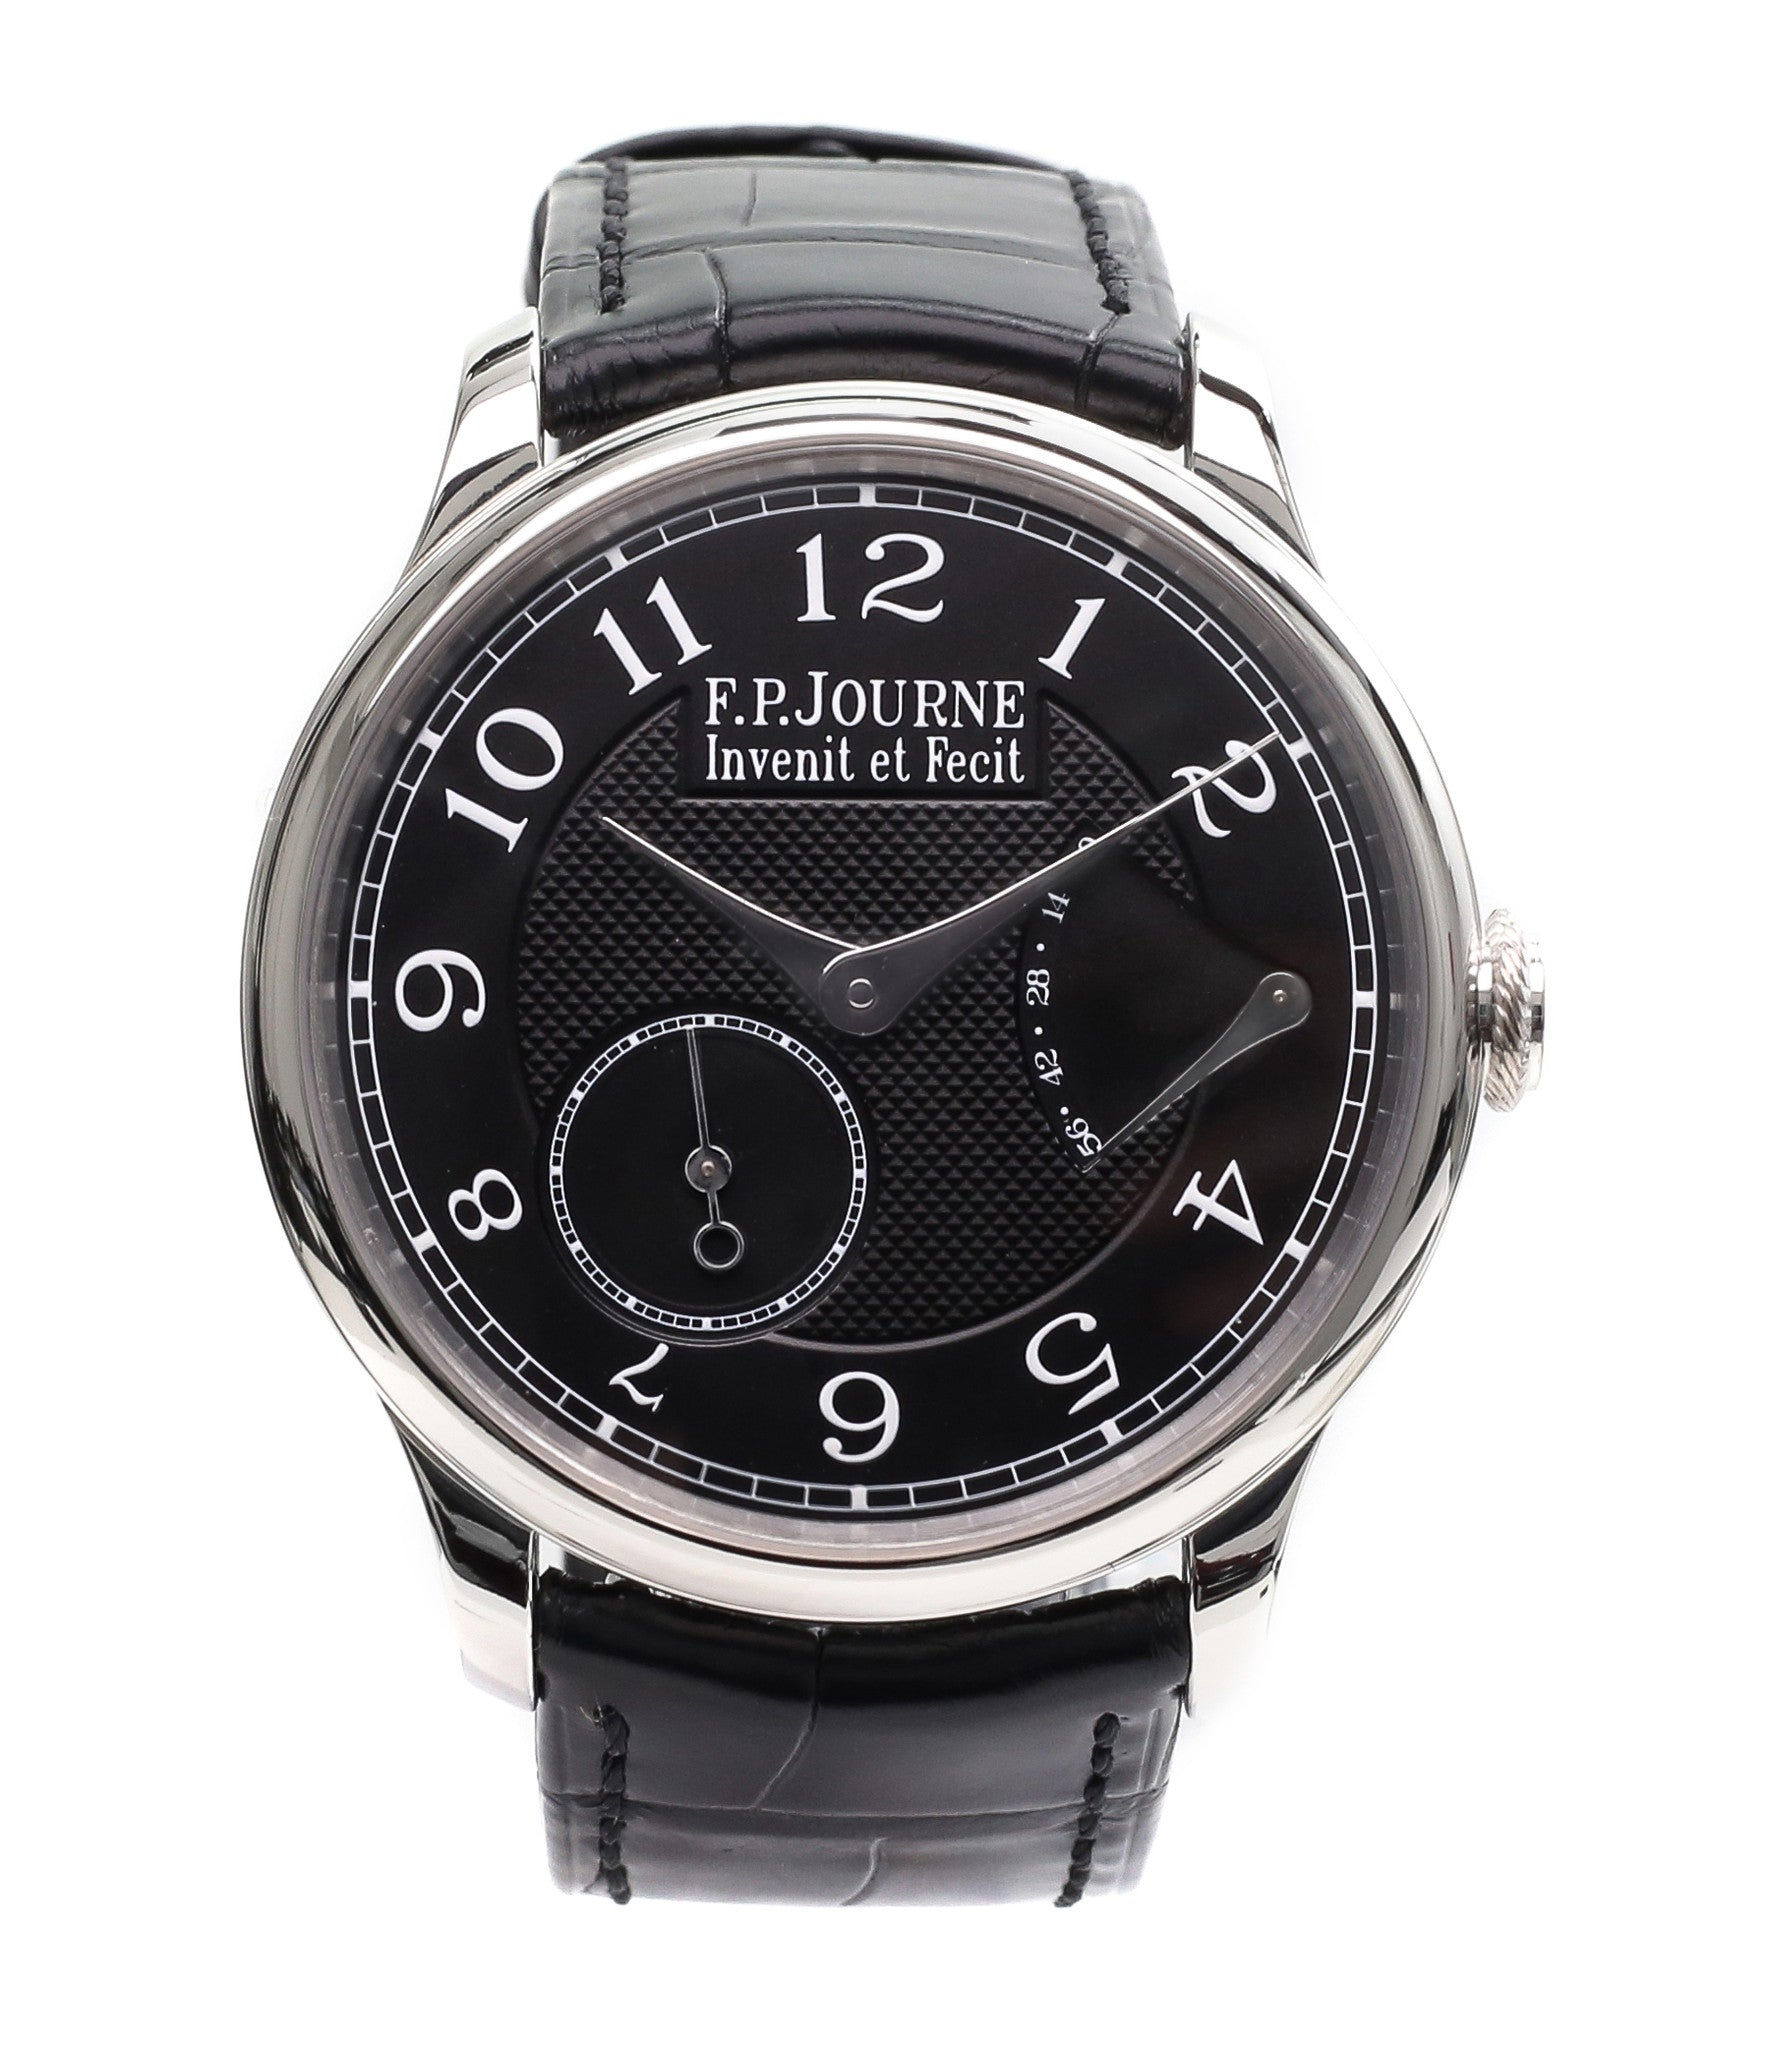 buy F. P. Journe Chronometre Souverain Black label platinum 38 mm watch online at A Collected Man